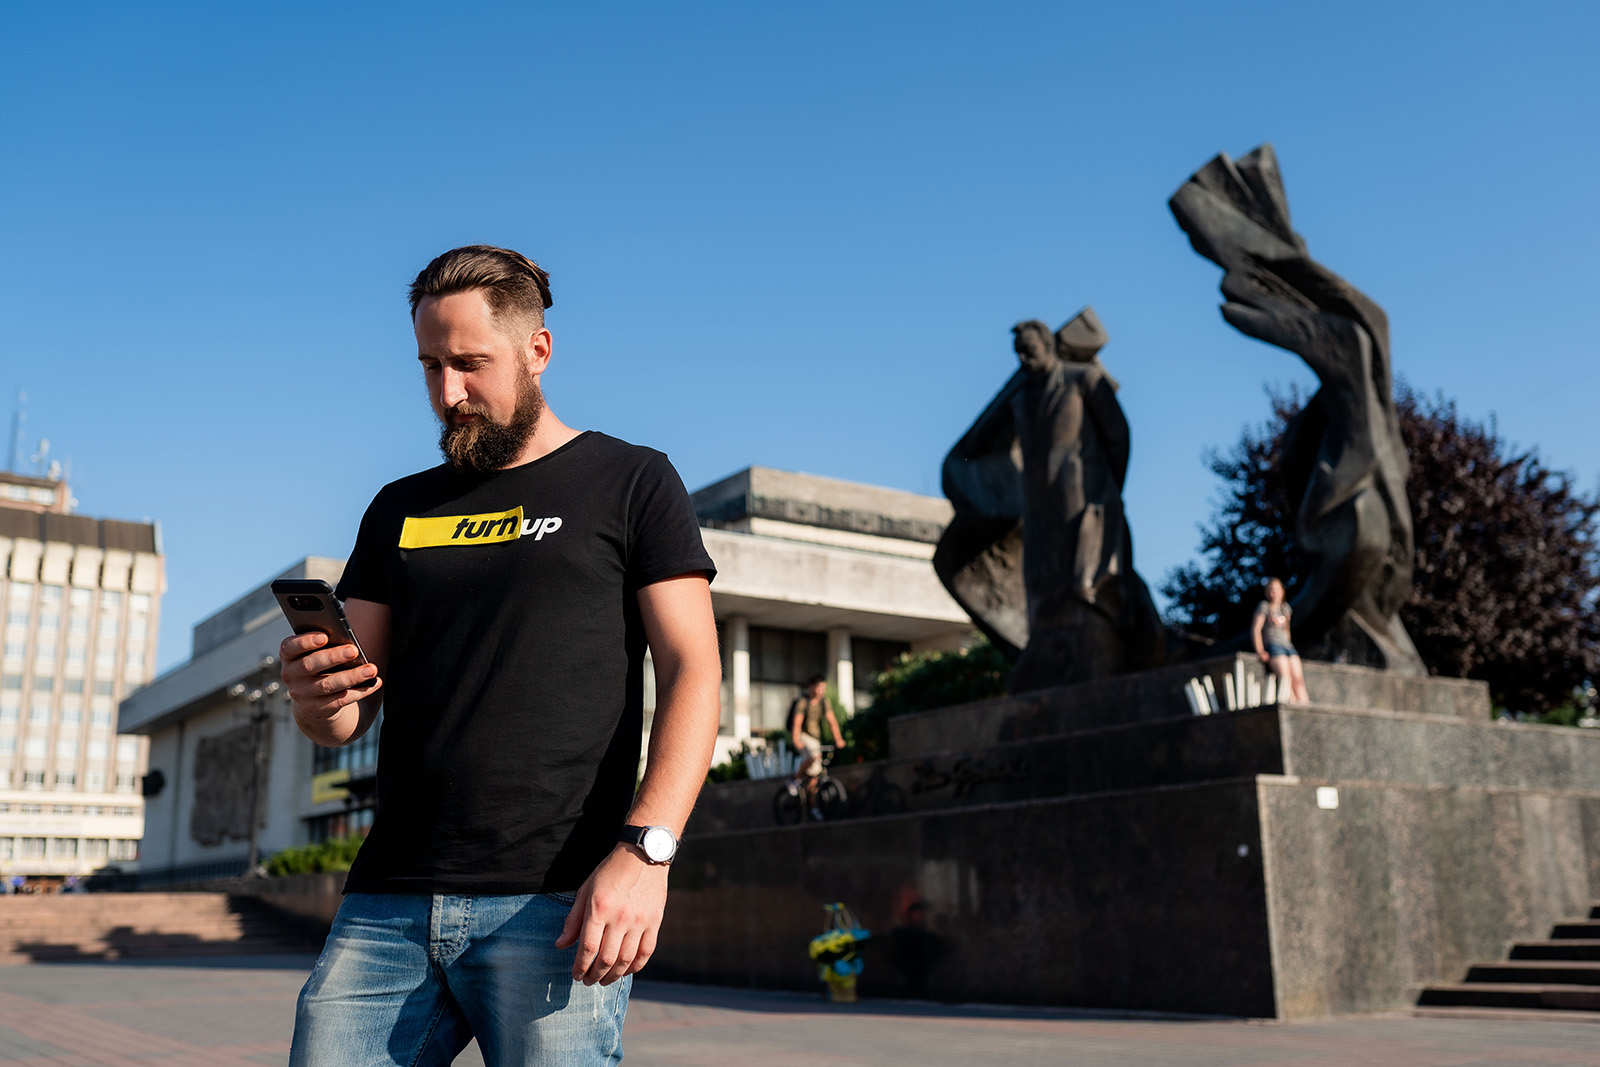 SMART tourism: all information about Ivano-Frankivsk in one mobile app